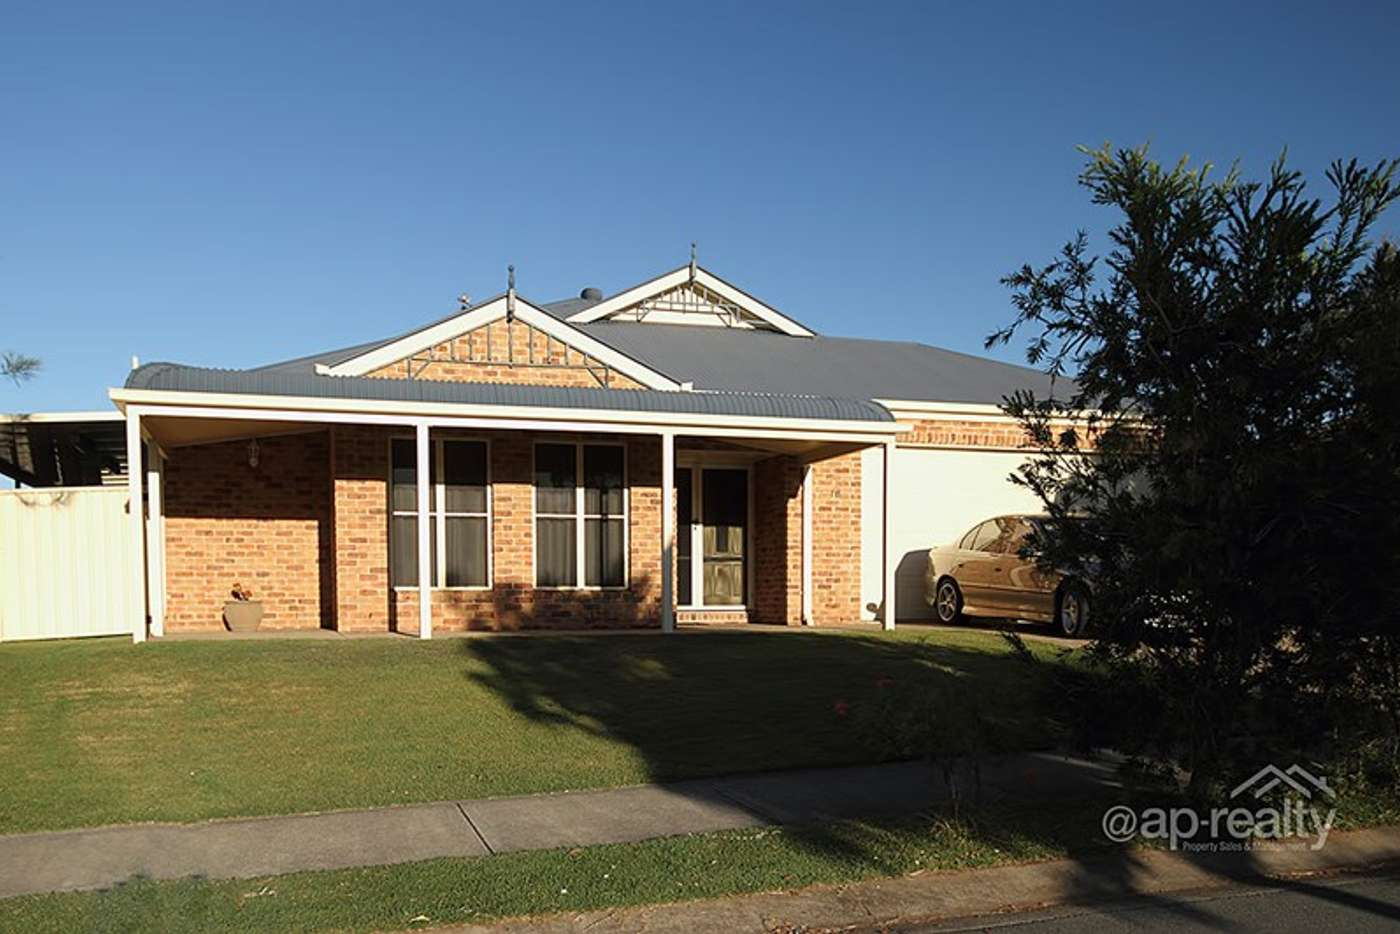 Main view of Homely house listing, 16 St Andrews Ave, Forest Lake QLD 4078